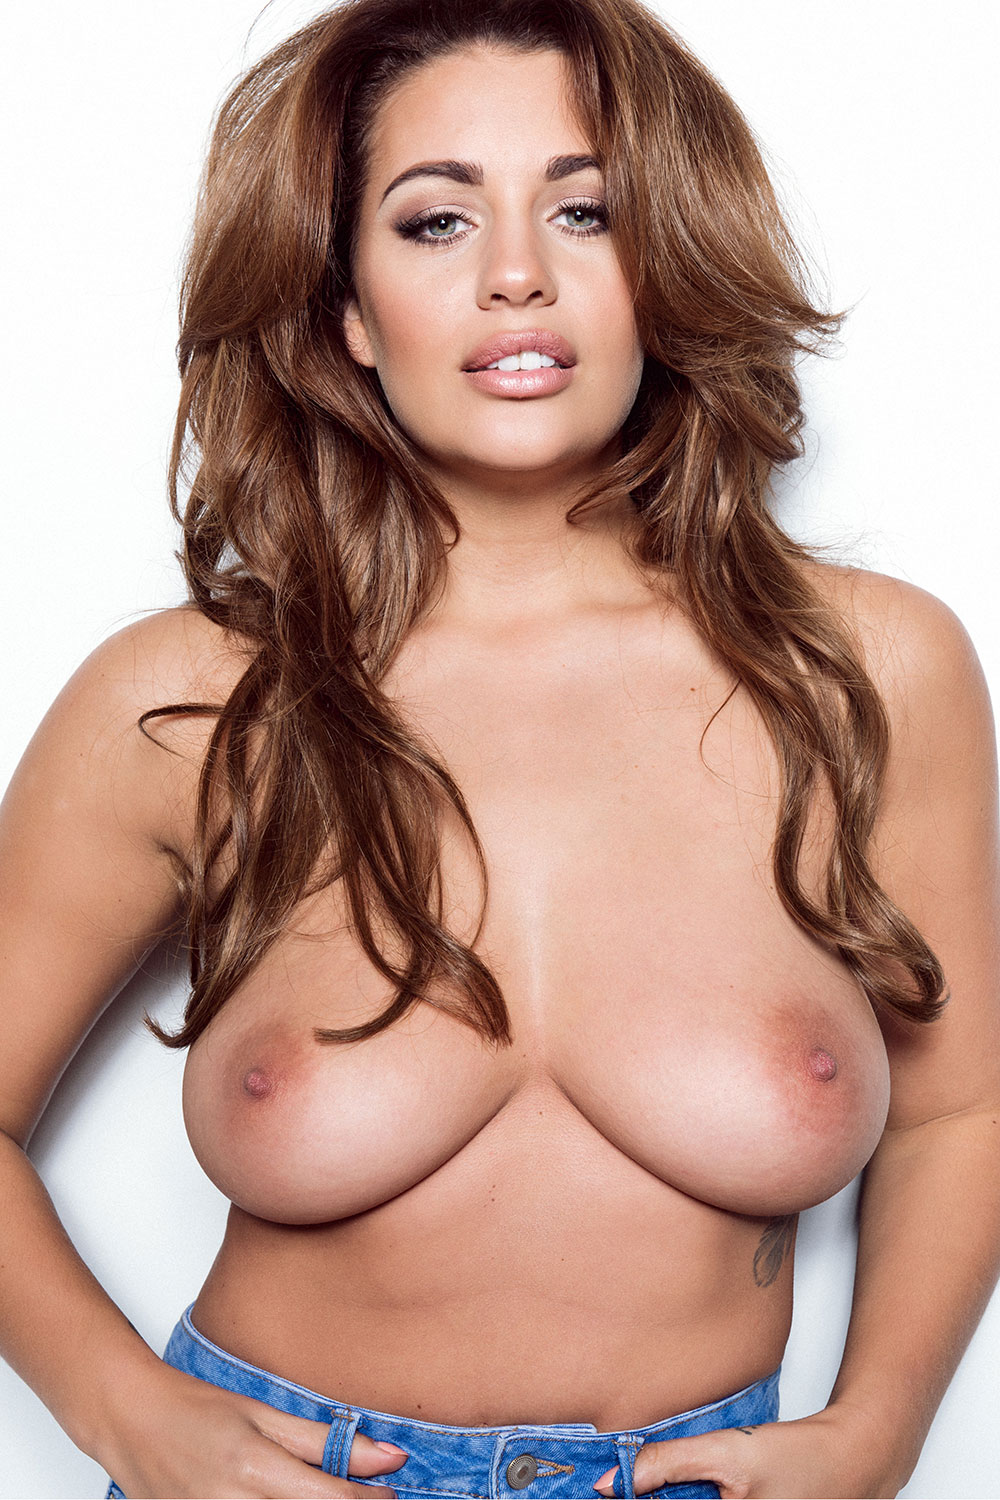 Topless Photos Of Holly P...